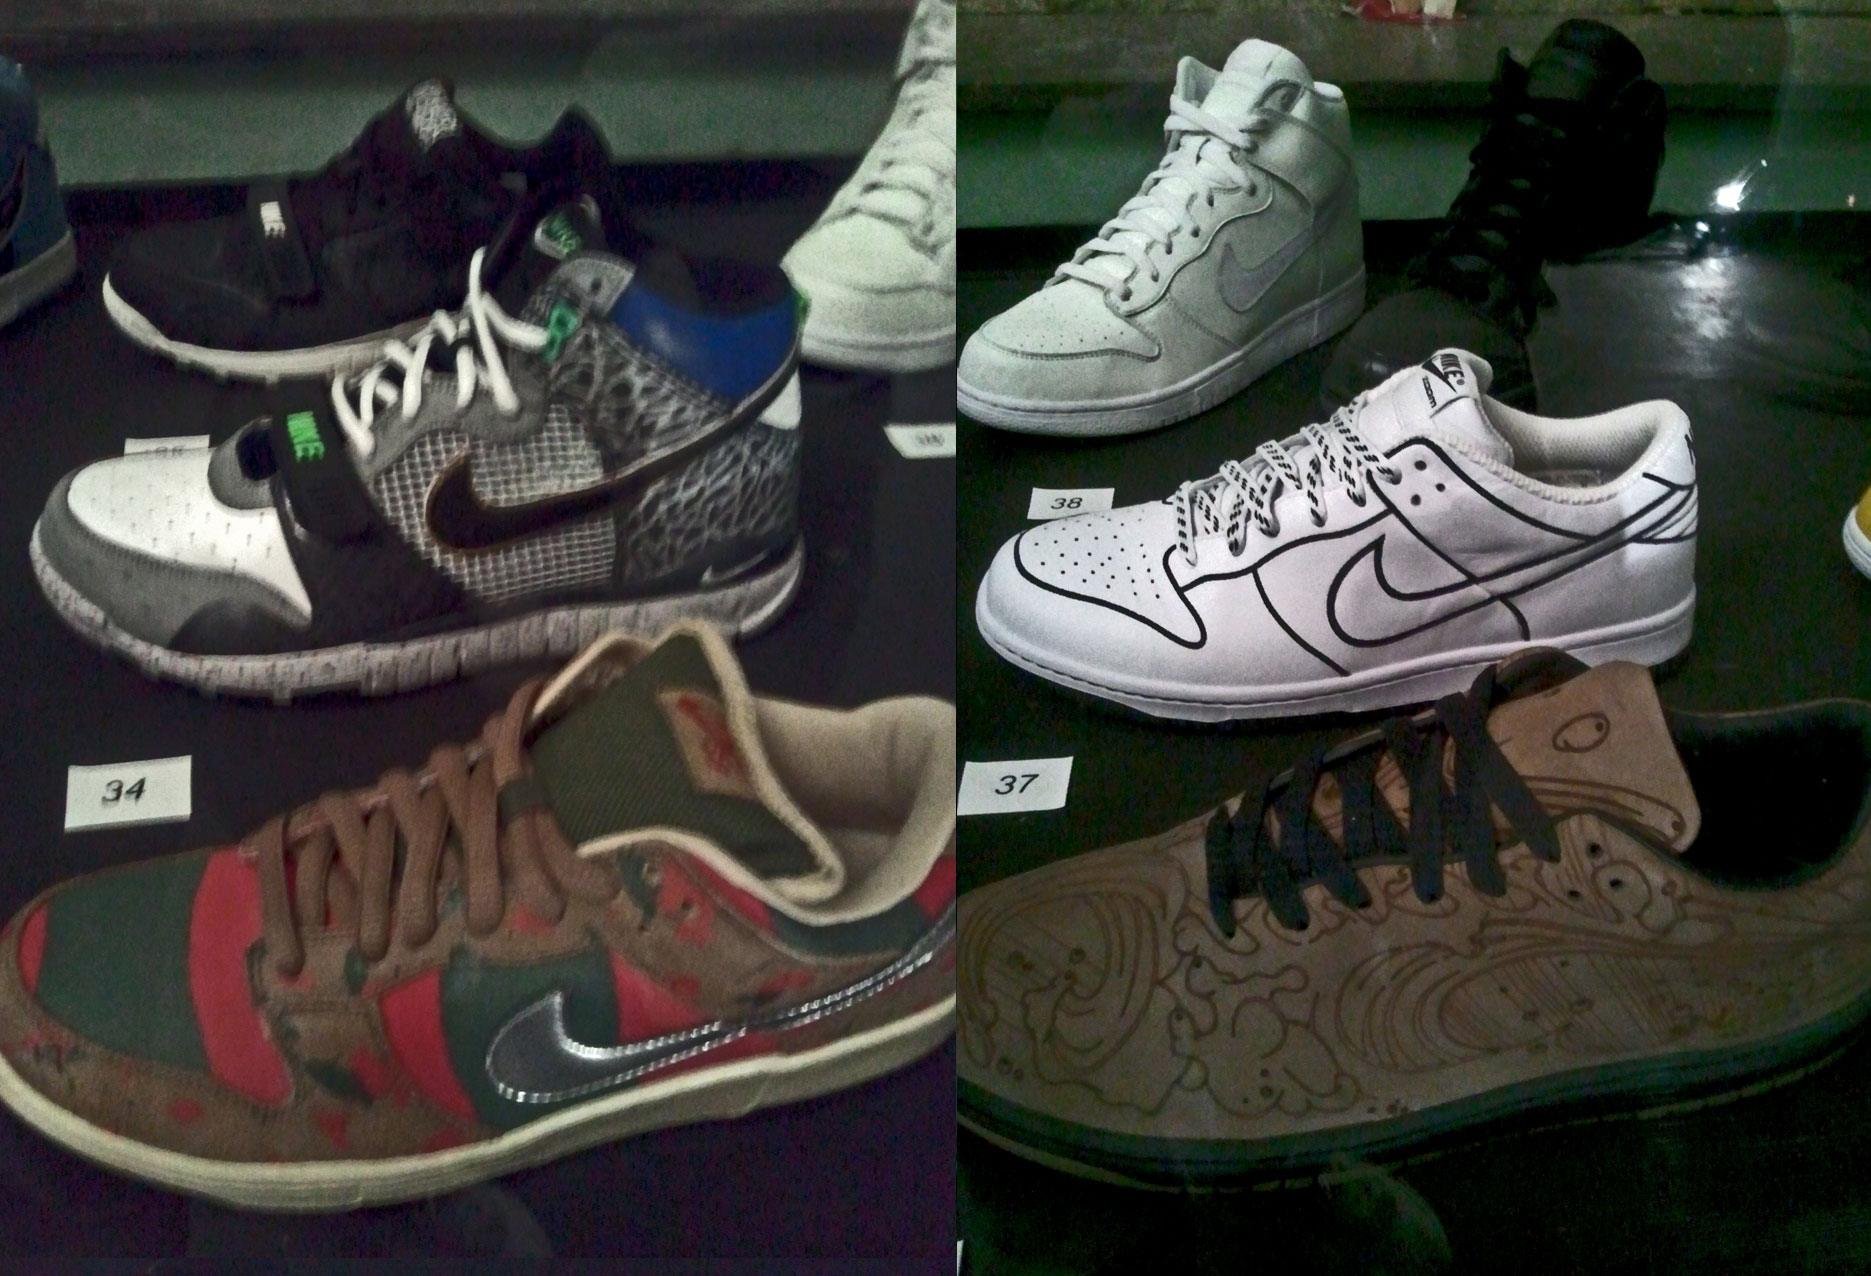 Dunk Low Pro SB Freddy Krueger, Trainer Dunk High Mita, Trainer Dunk Low Stussy World Tour, Dunk Low by Chris Lundy Laser Pack, Dunk Low Wmns One Piece, Dunk High Glow in the dark